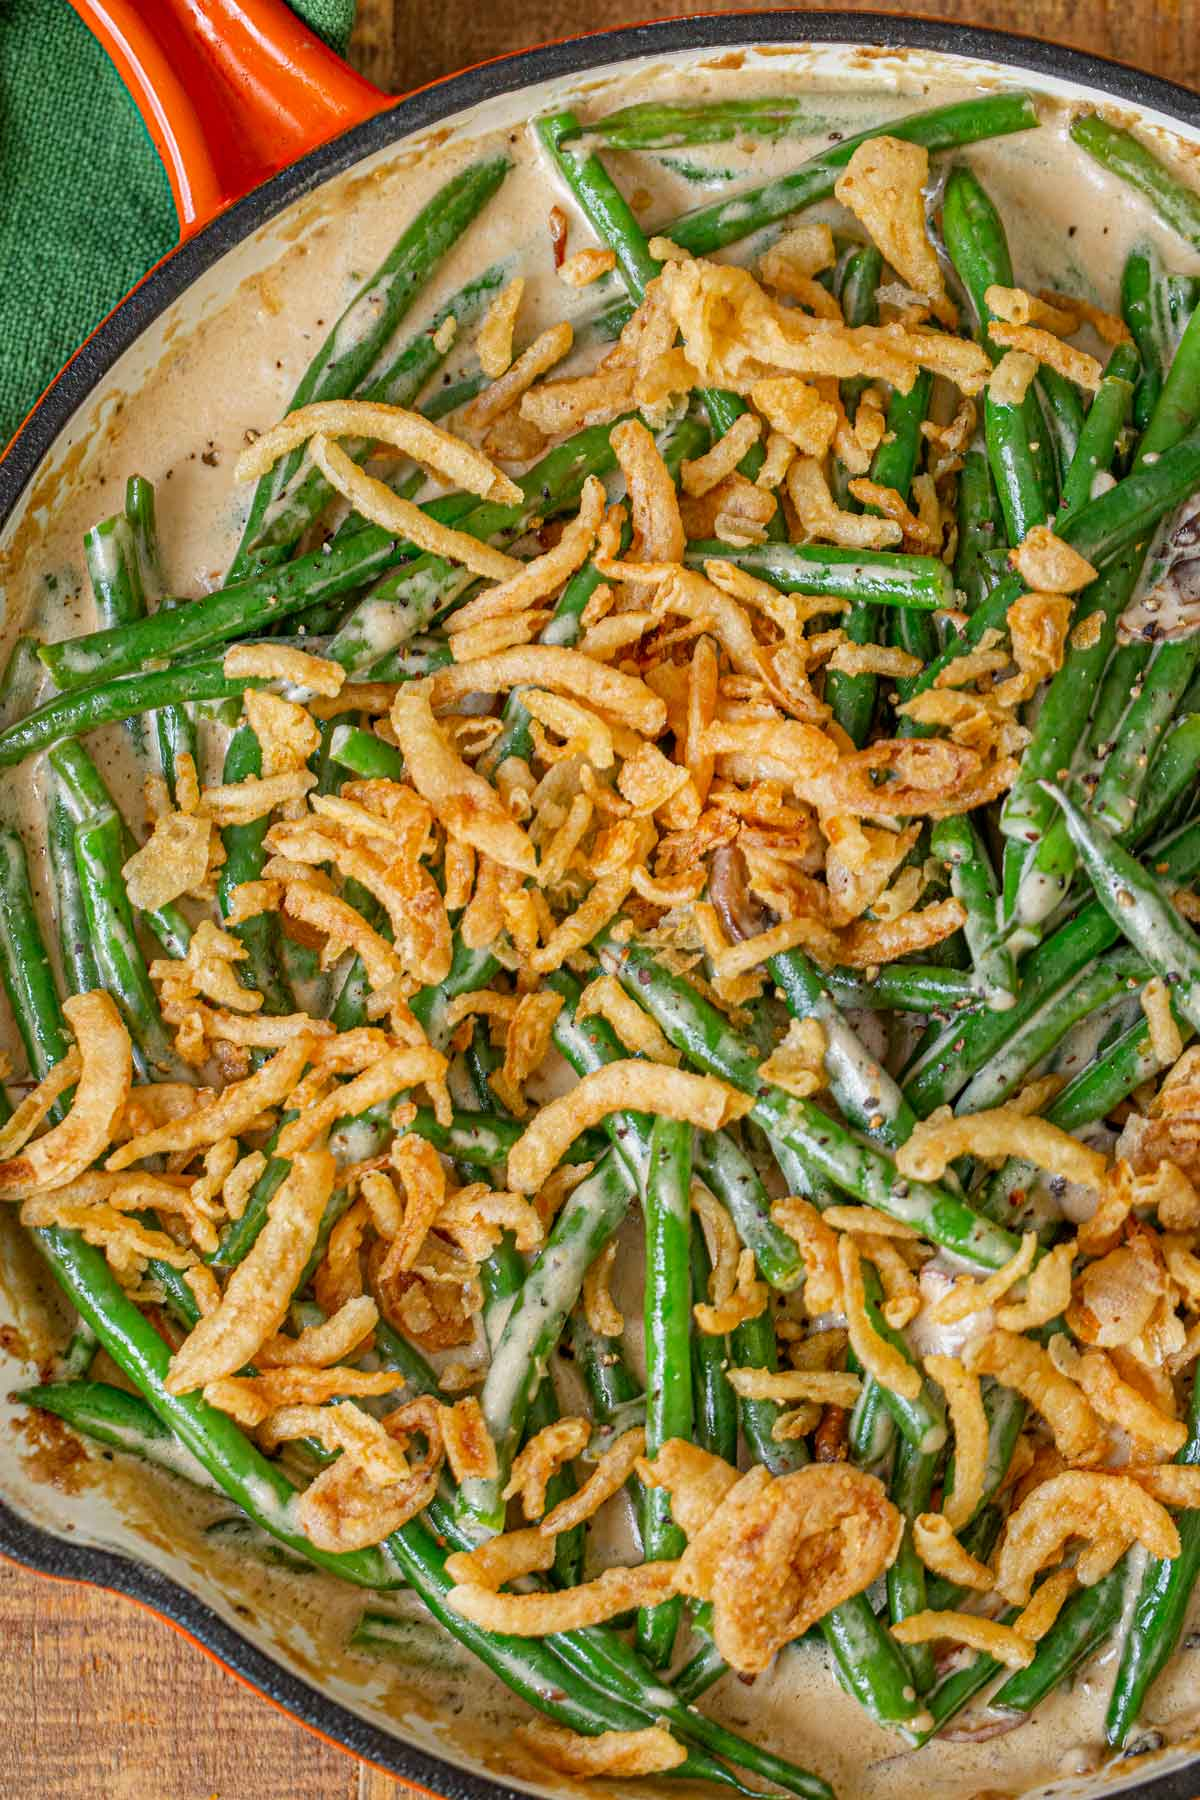 Stovetop Green Bean Casserole in skillet with French onions